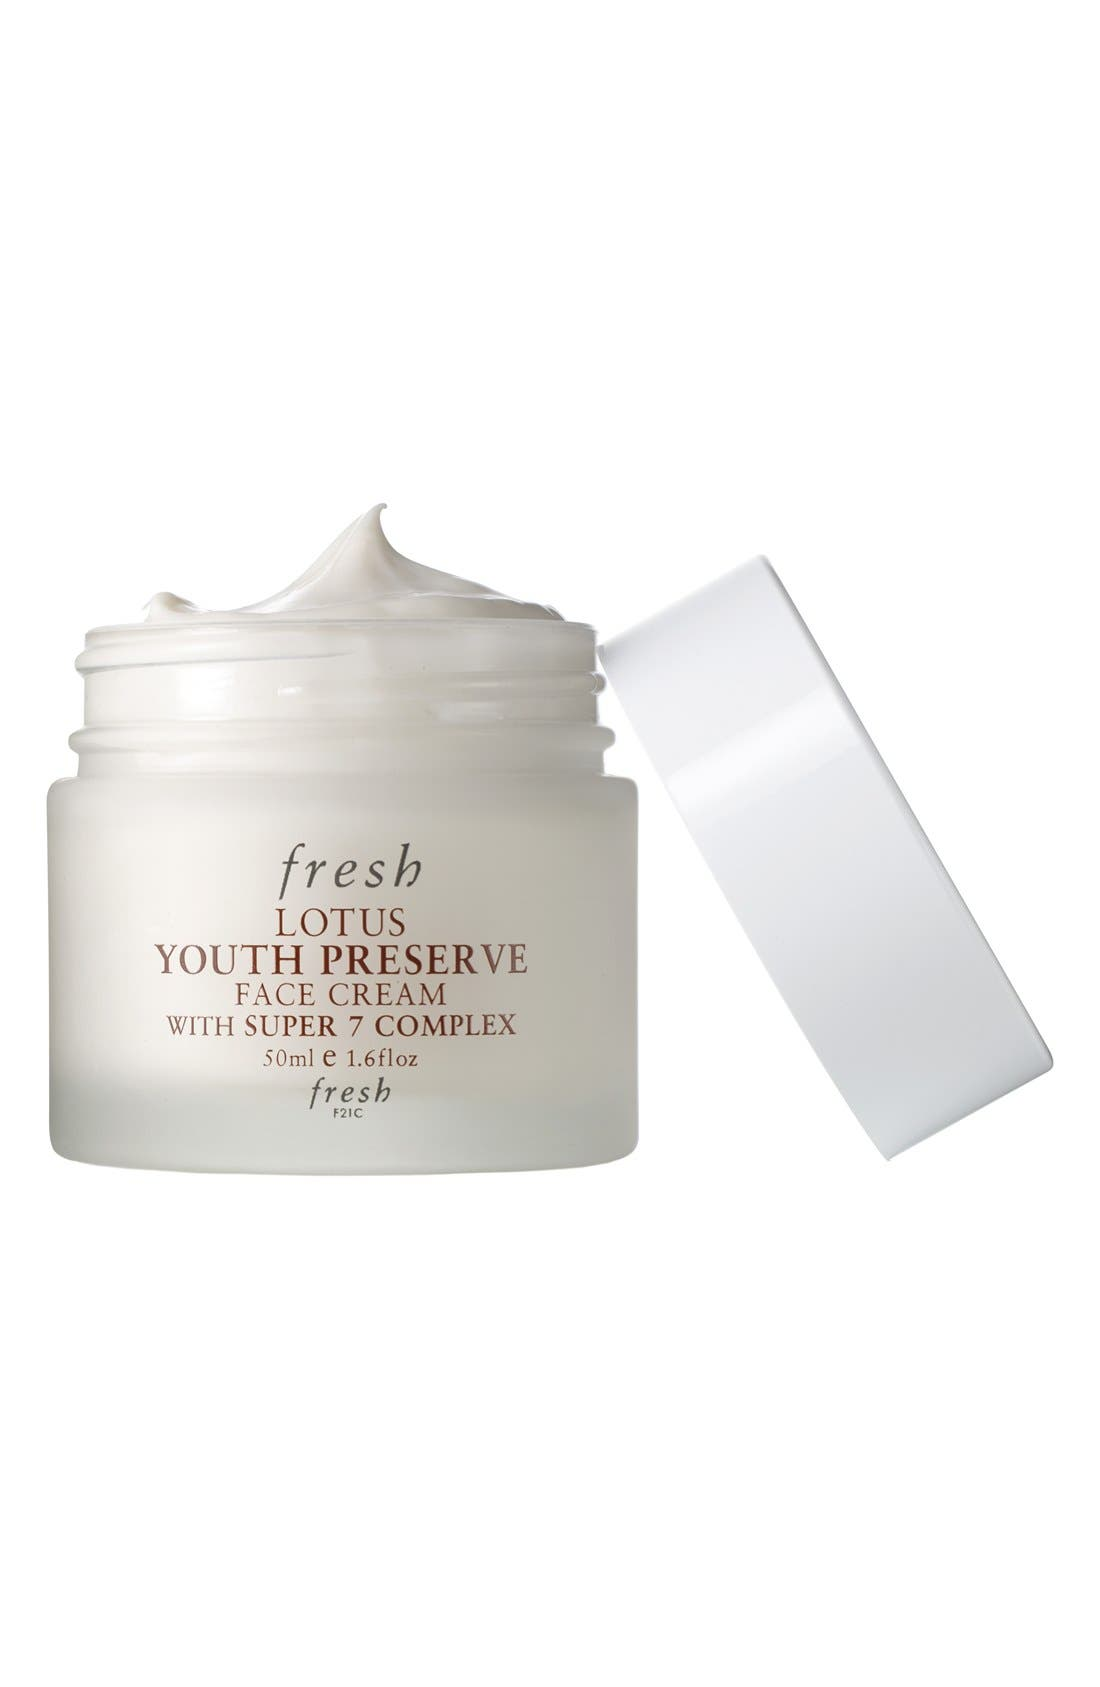 Lotus Youth Preserve Face Cream,                             Alternate thumbnail 4, color,                             NO COLOR